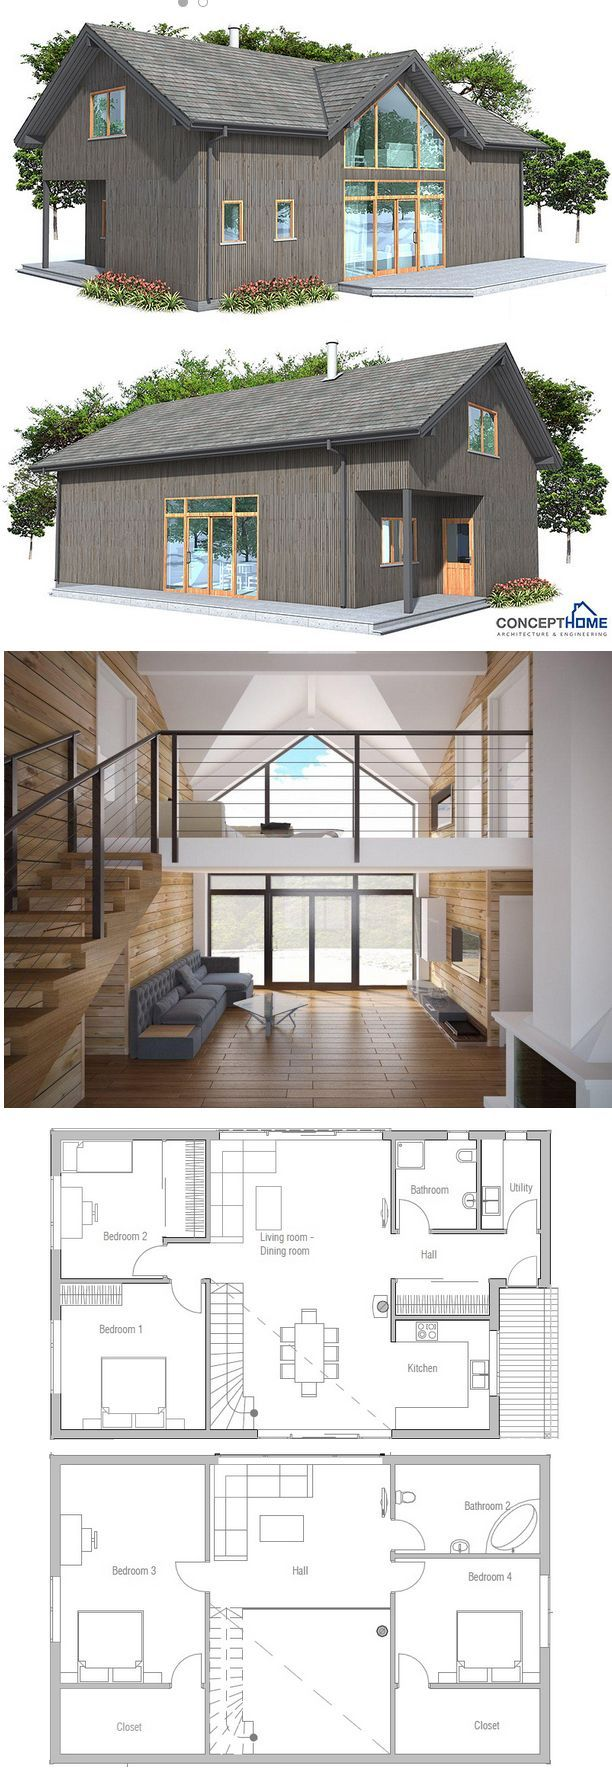 Change the upstairs bedrooms so both have ensuite bathrooms.  Eliminate Bedroom 2 downstairs to increase living room space. | House Plans